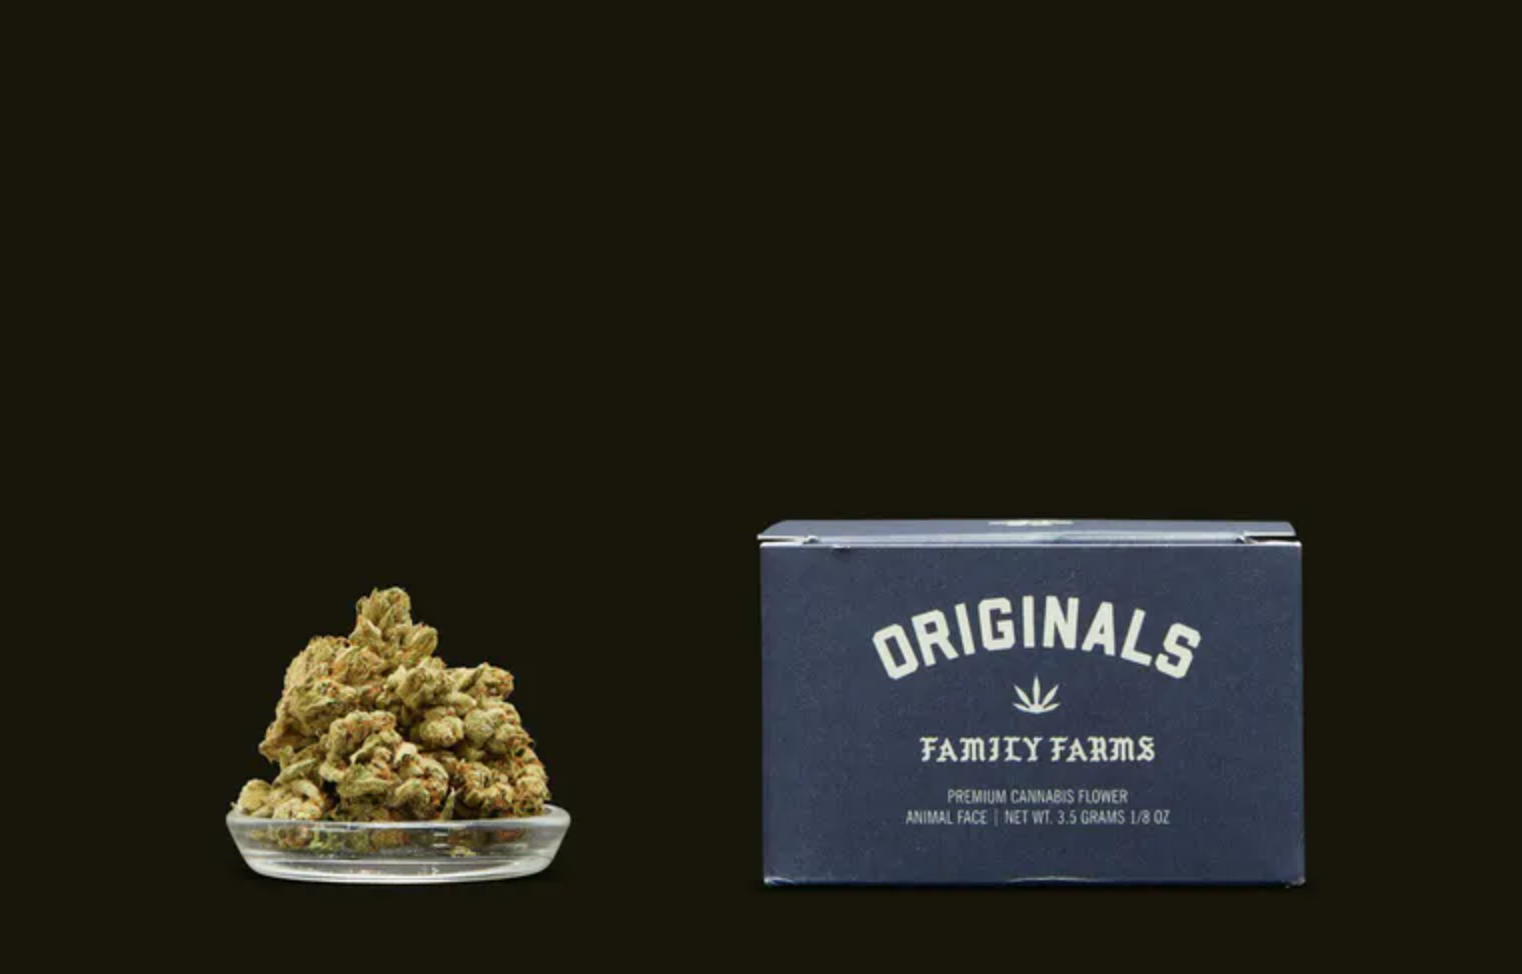 Complete Guide To Buying Originals Weed At Originals Factory & Weed Shop